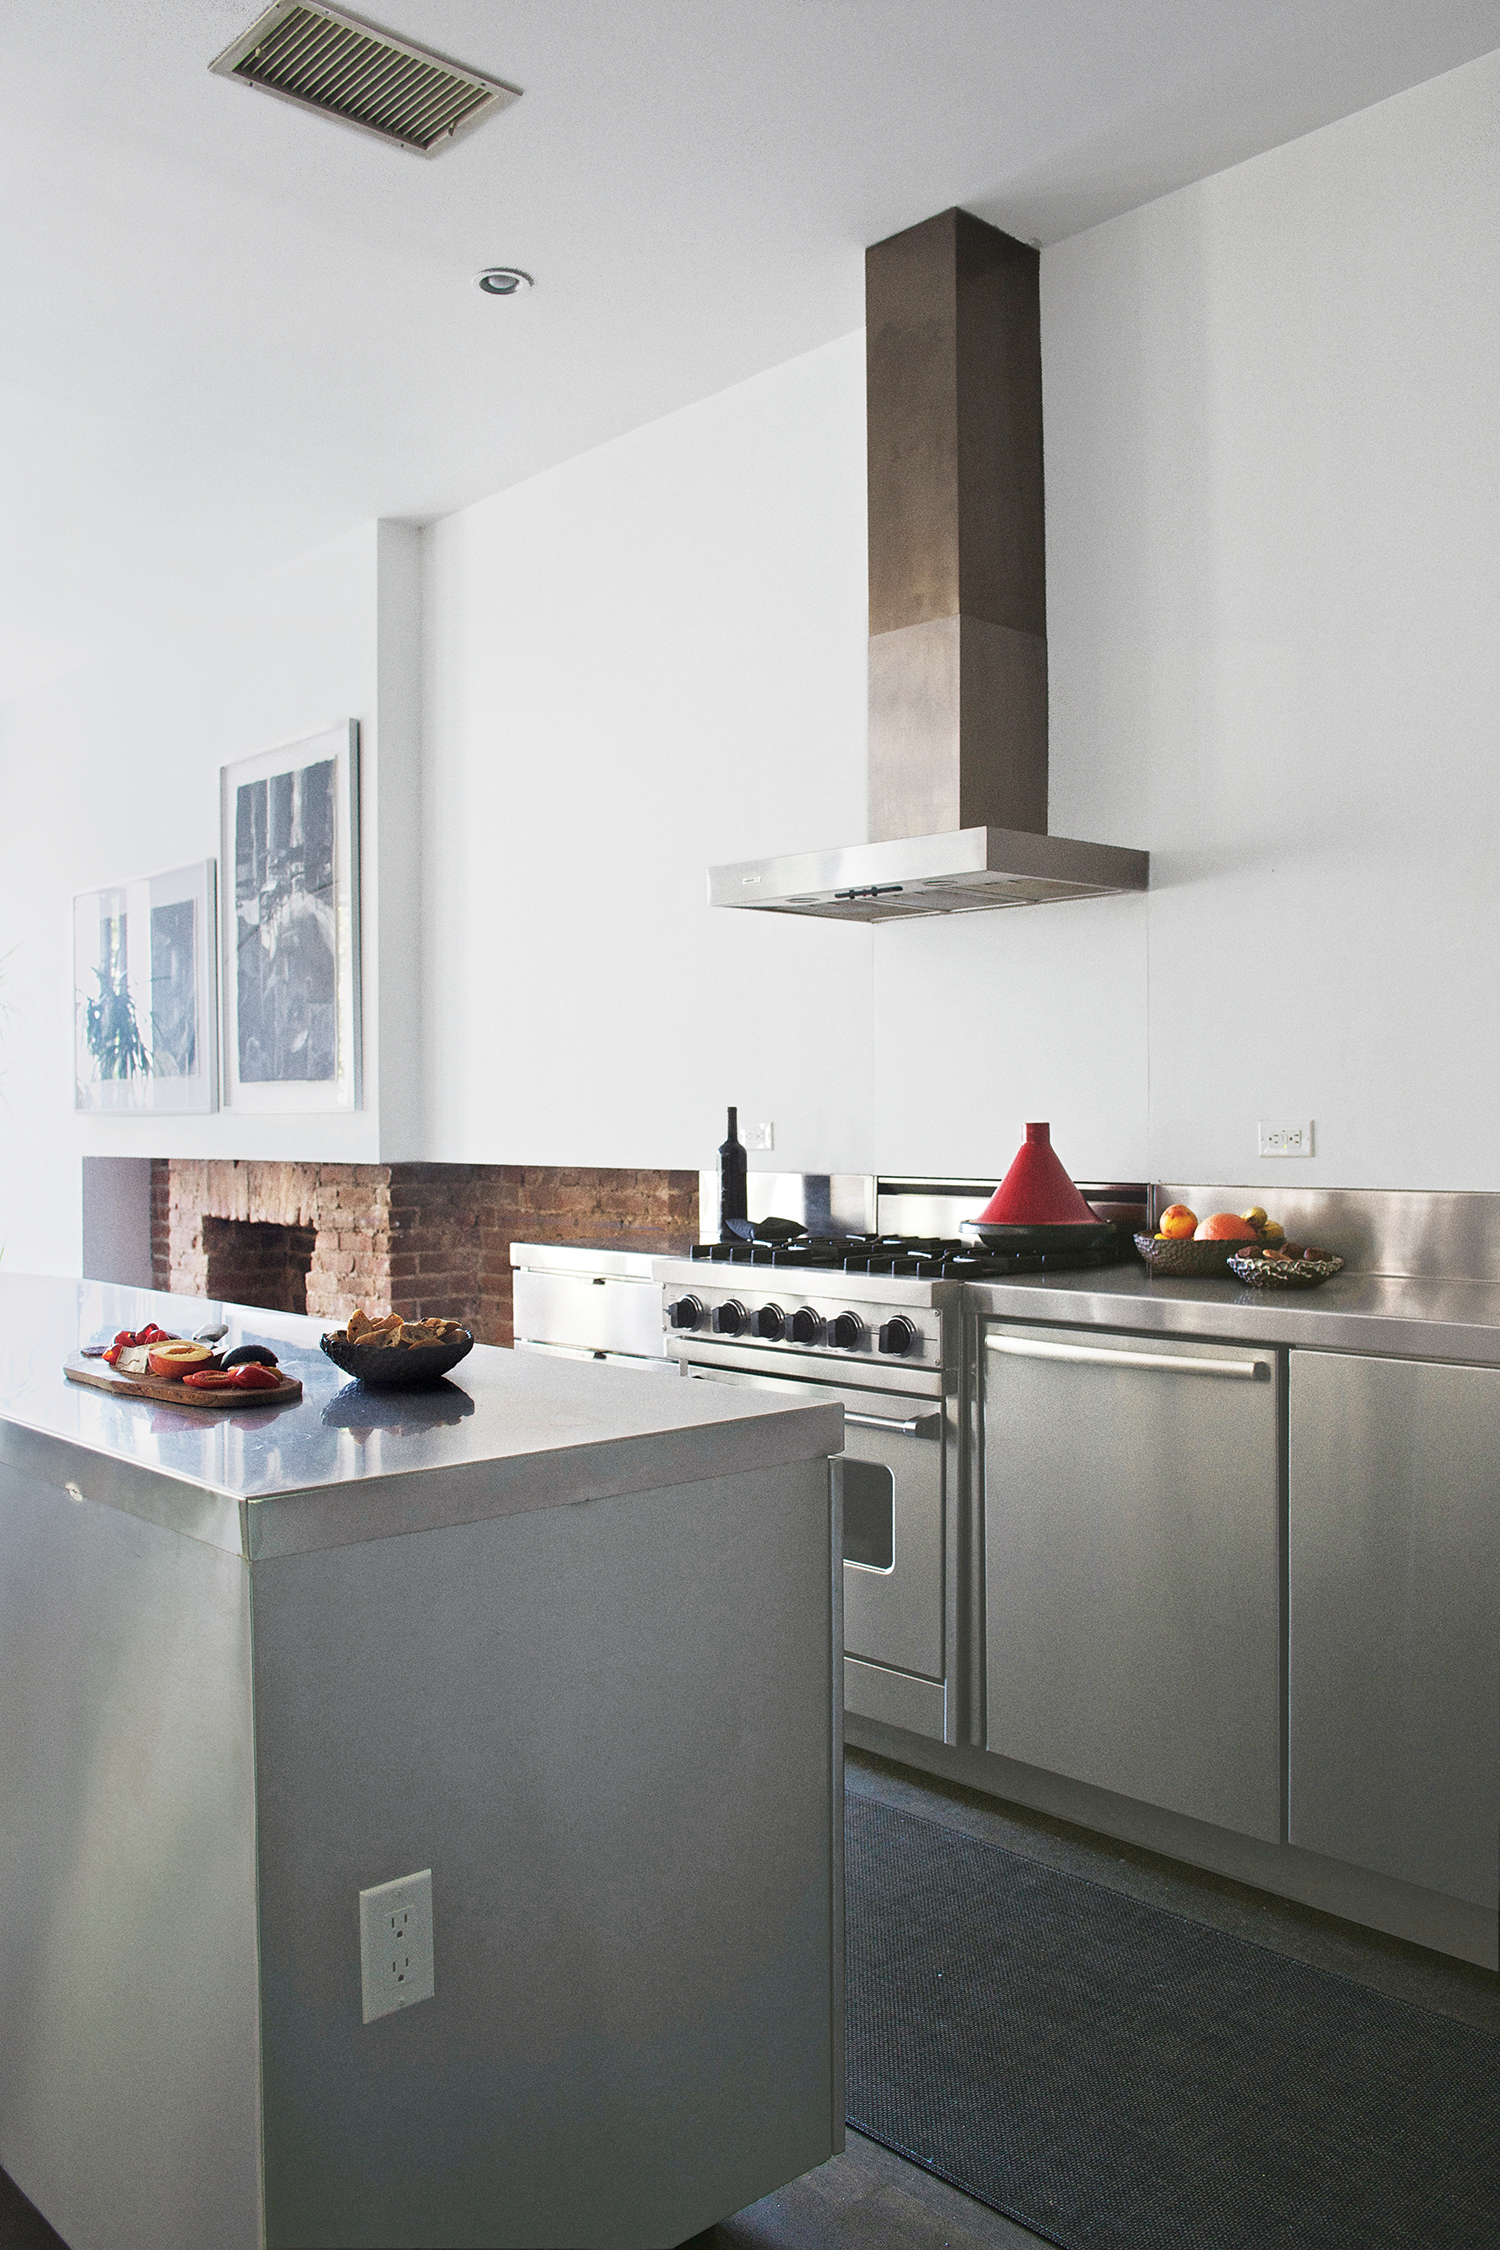 Brooklyn renovation interior kitchen